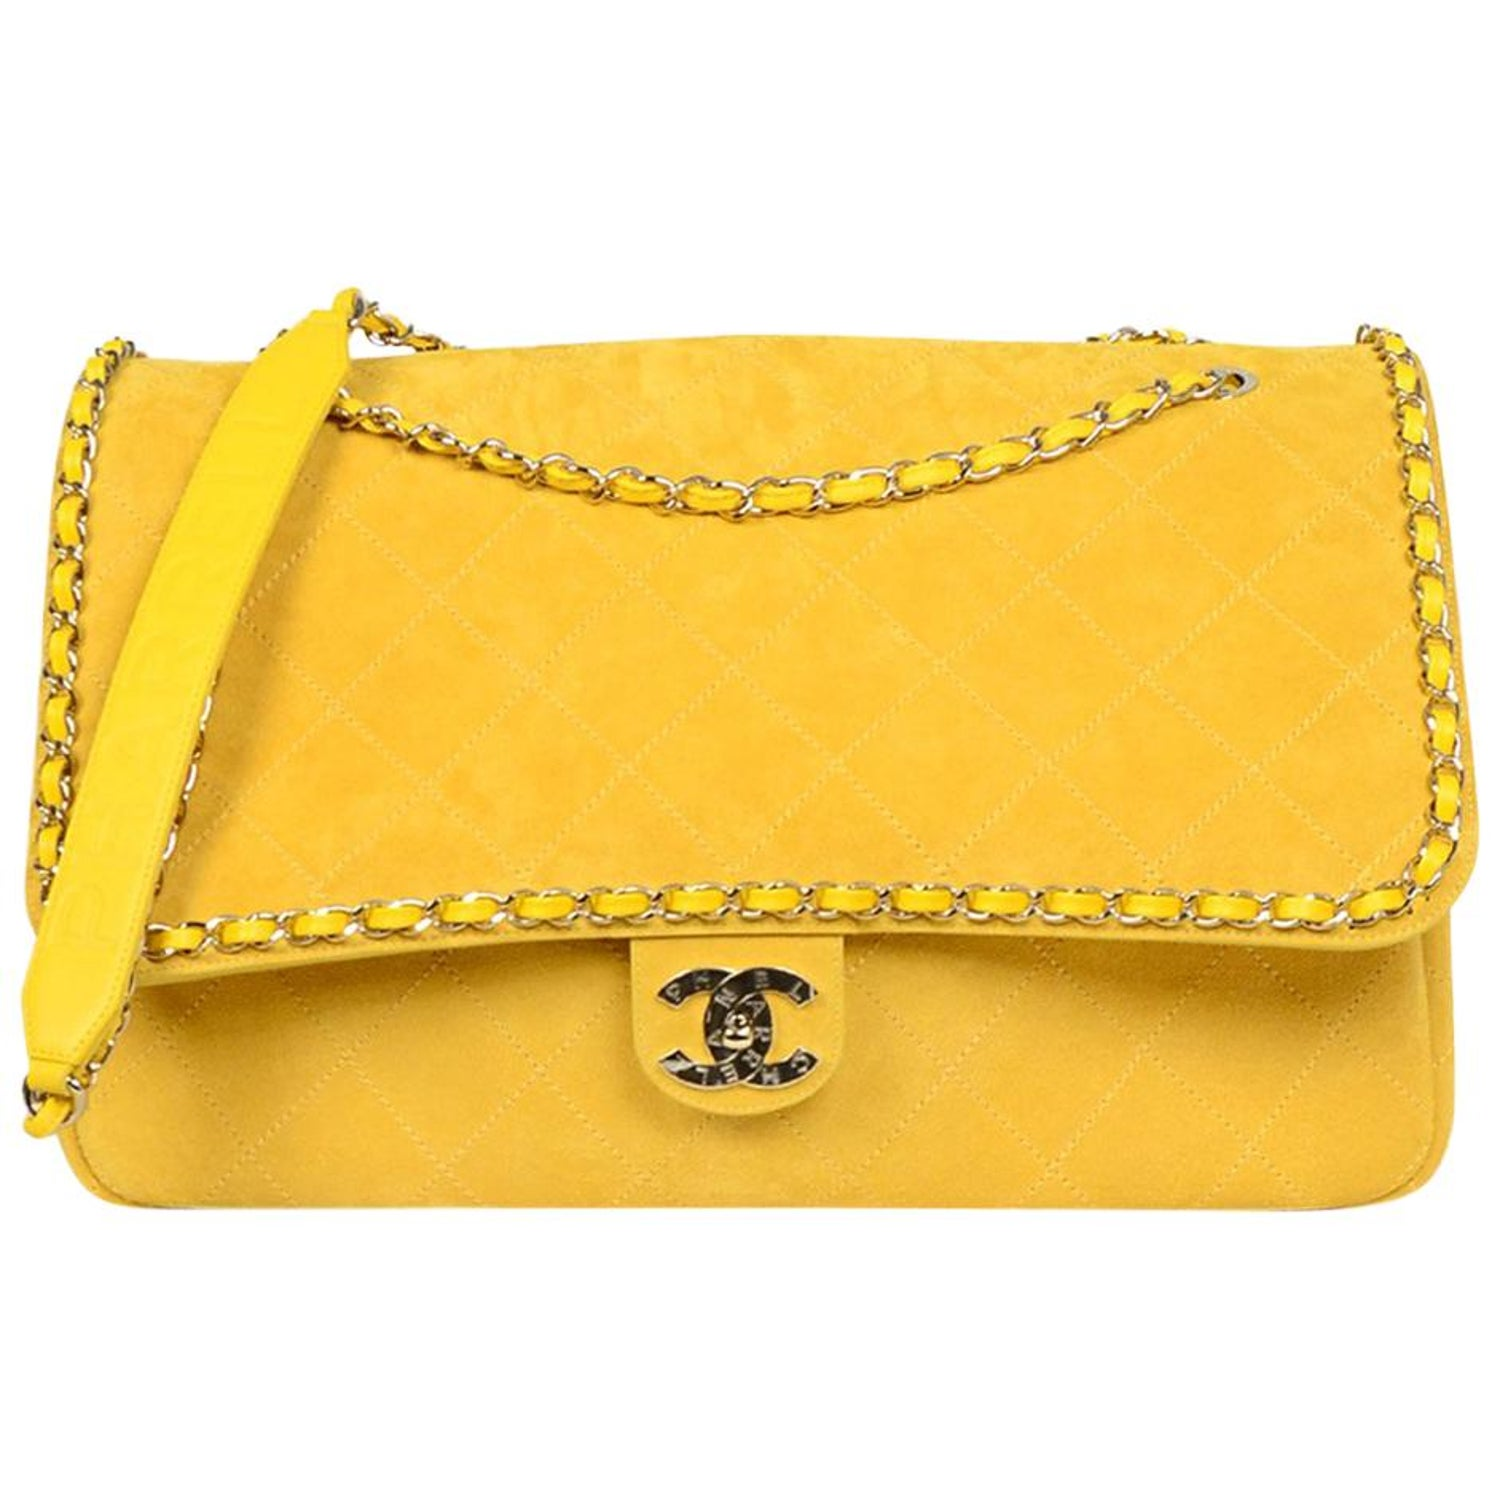 4c318c4cfa2 CHANEL x PHARRELL 2019 LIMITED EDITION Yellow Suede XXL Quilted Flap Bag  For Sale at 1stdibs